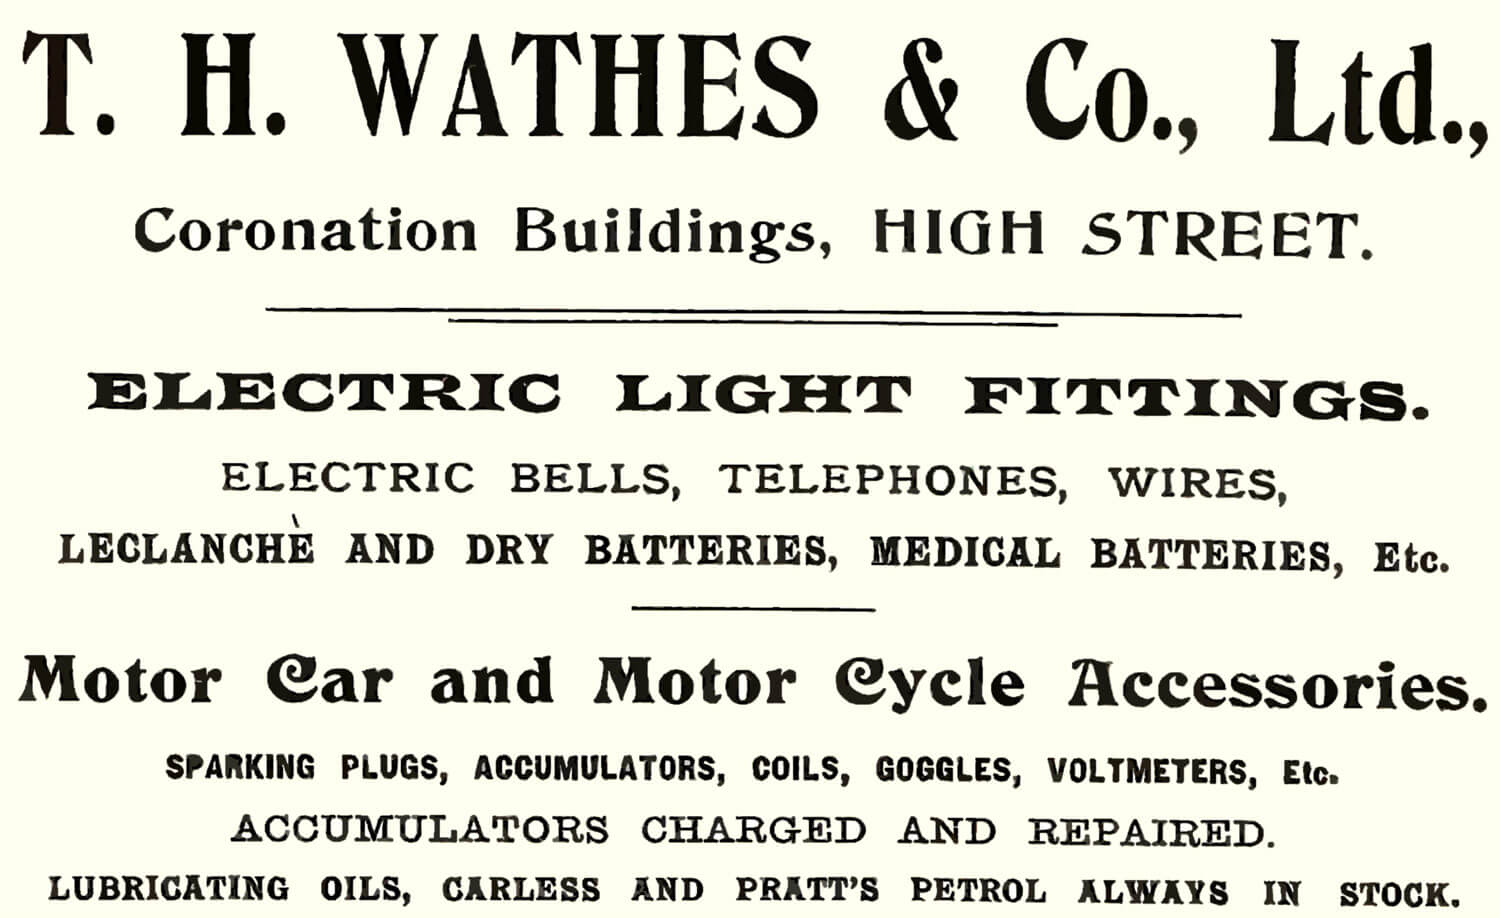 Advert for T.H. Wathes & Co. Ltd. Who were based in the Coronation Buildings -